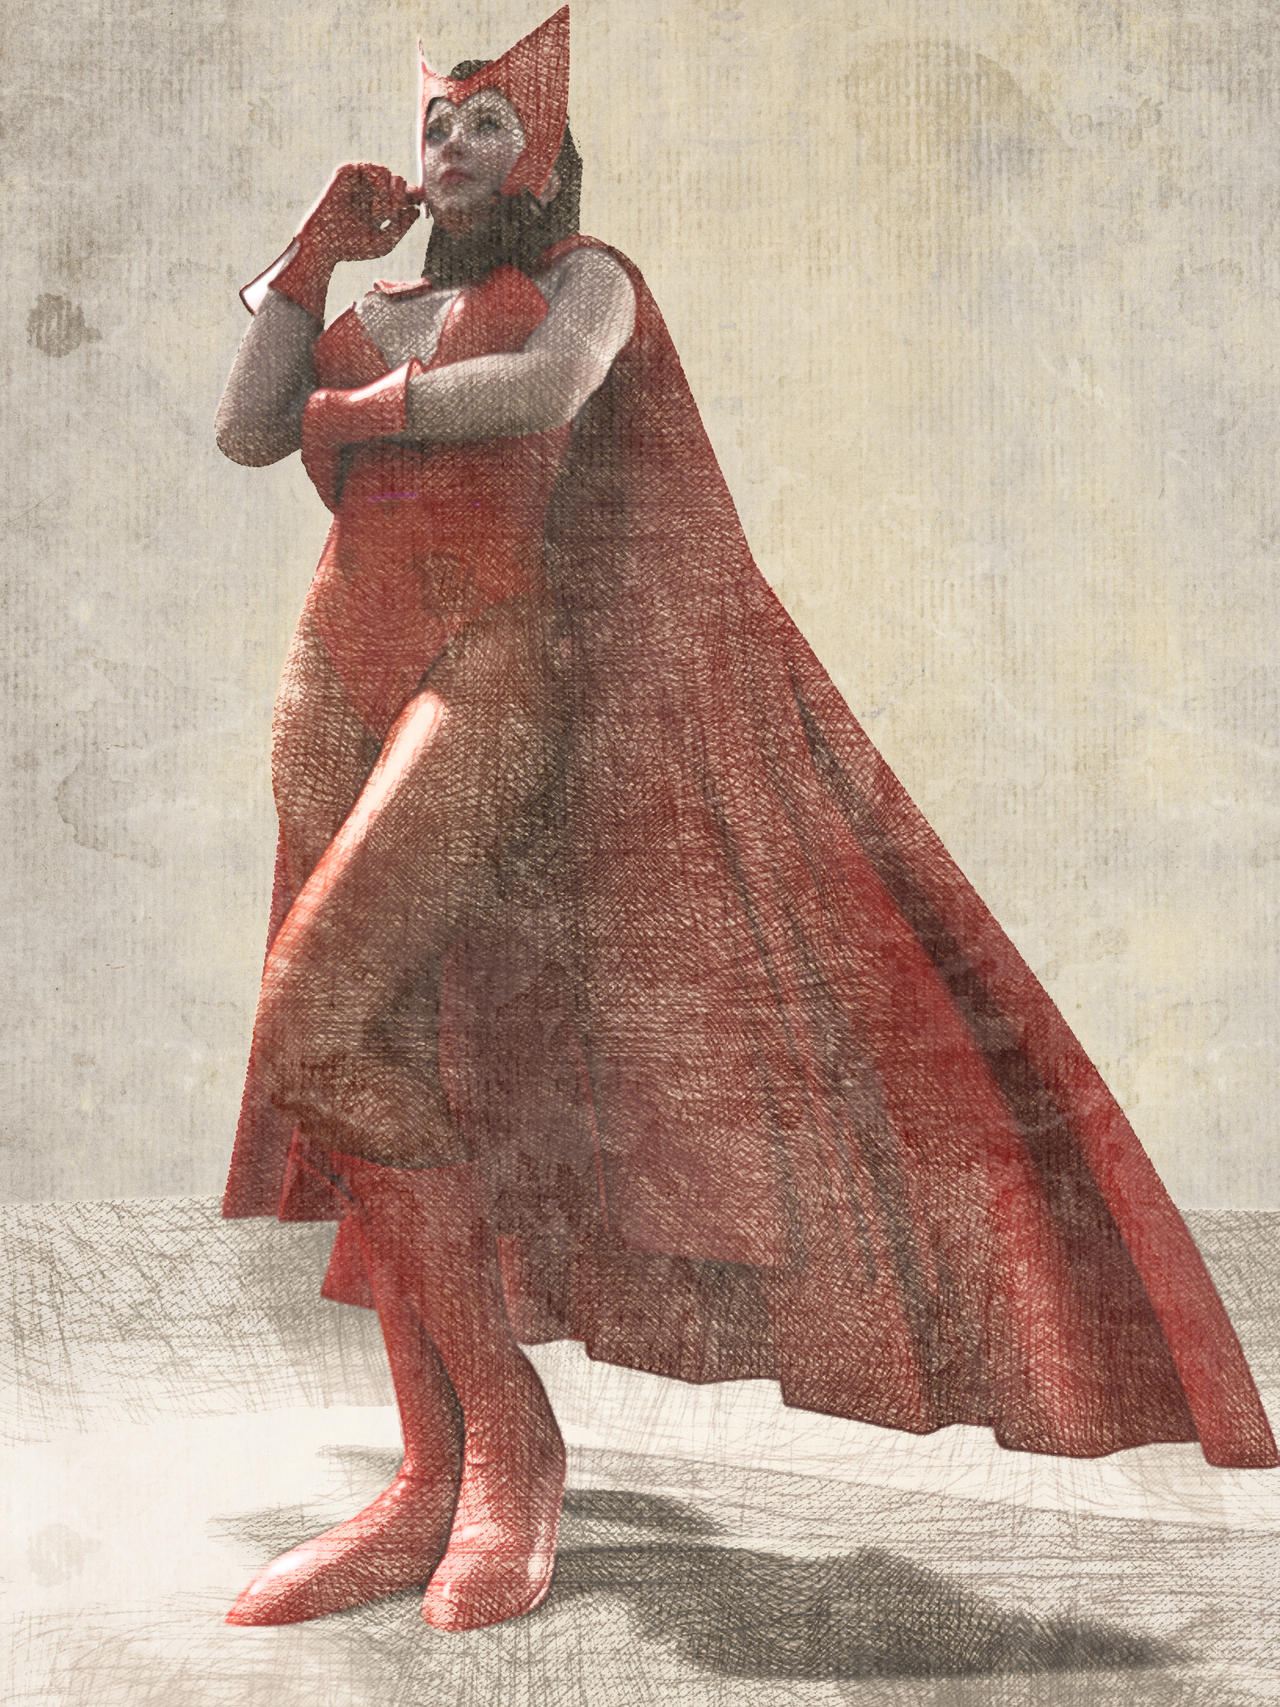 ScArlEt WitcH by mrkillabee